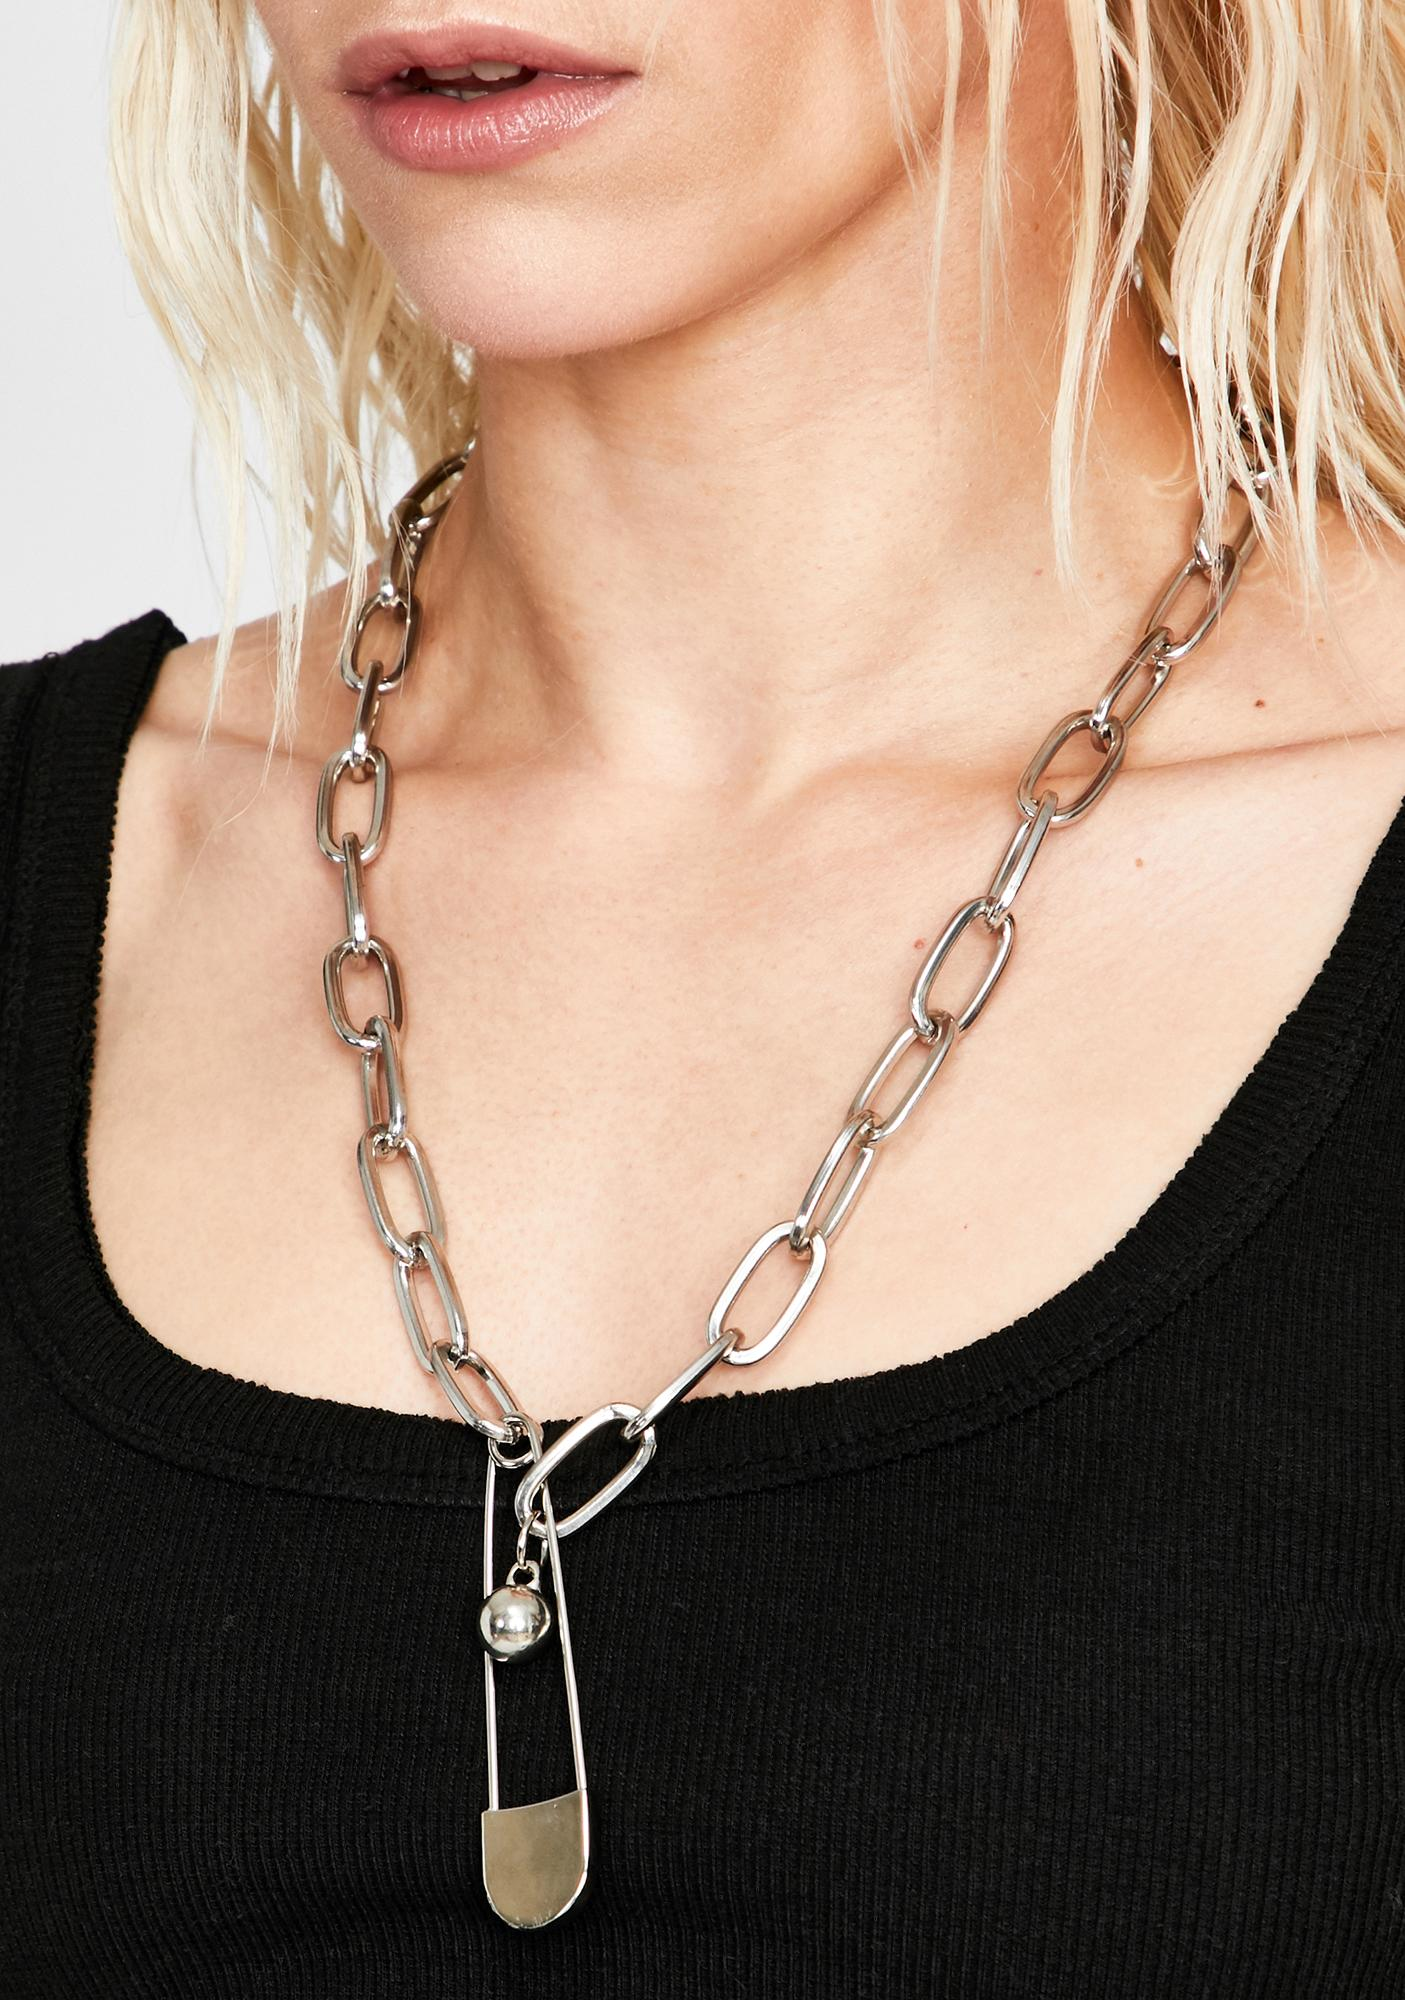 Ravage My Heart Chain Necklace